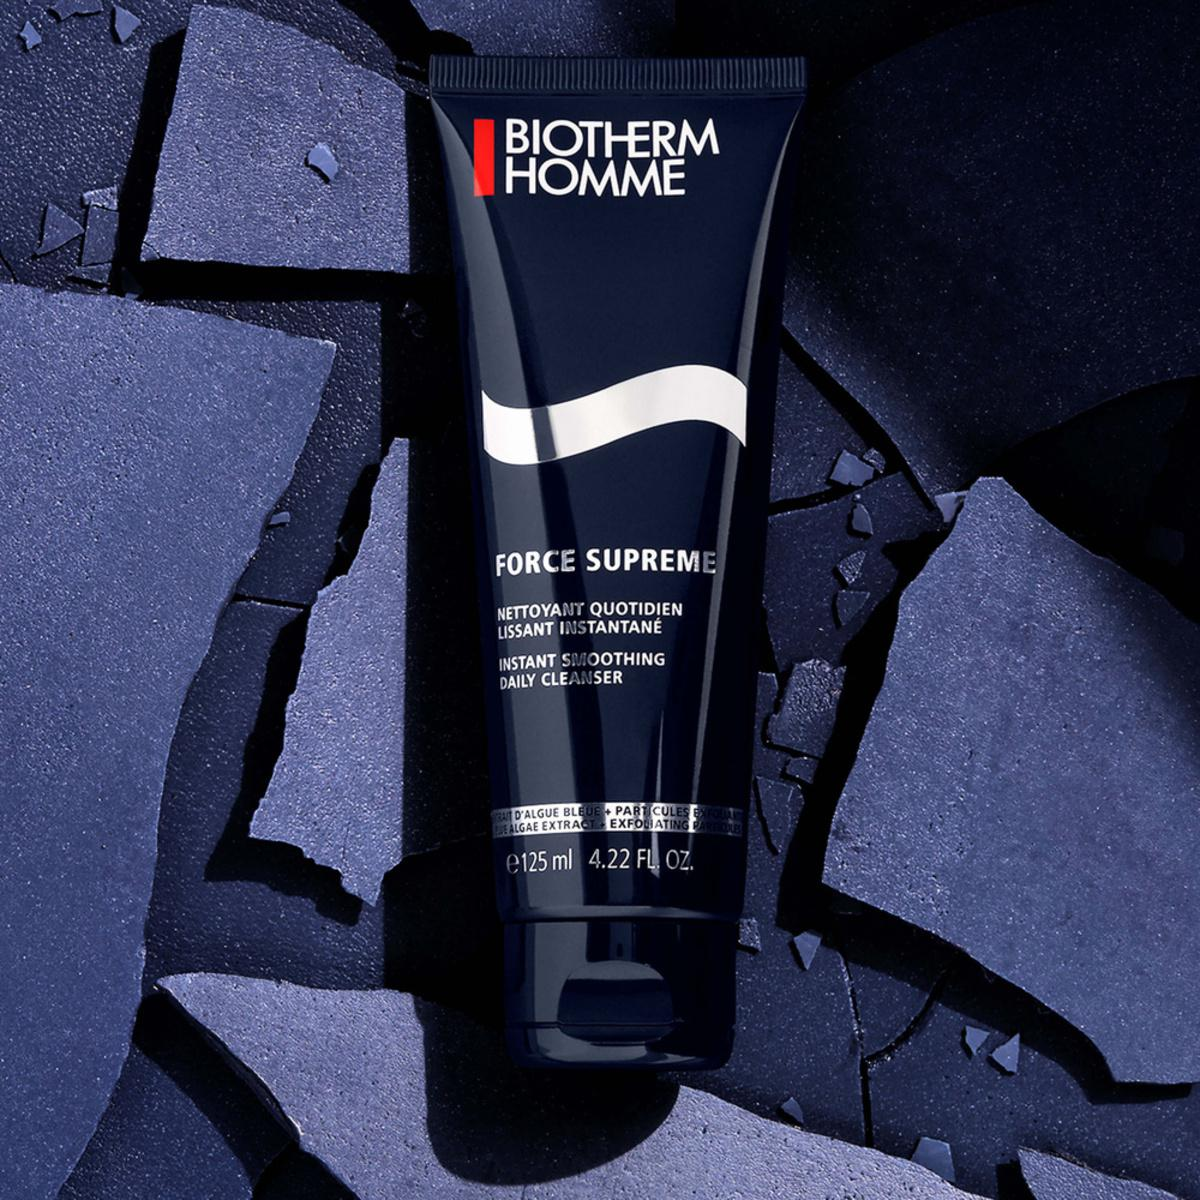 Nettoyant homme Biotherm Homme